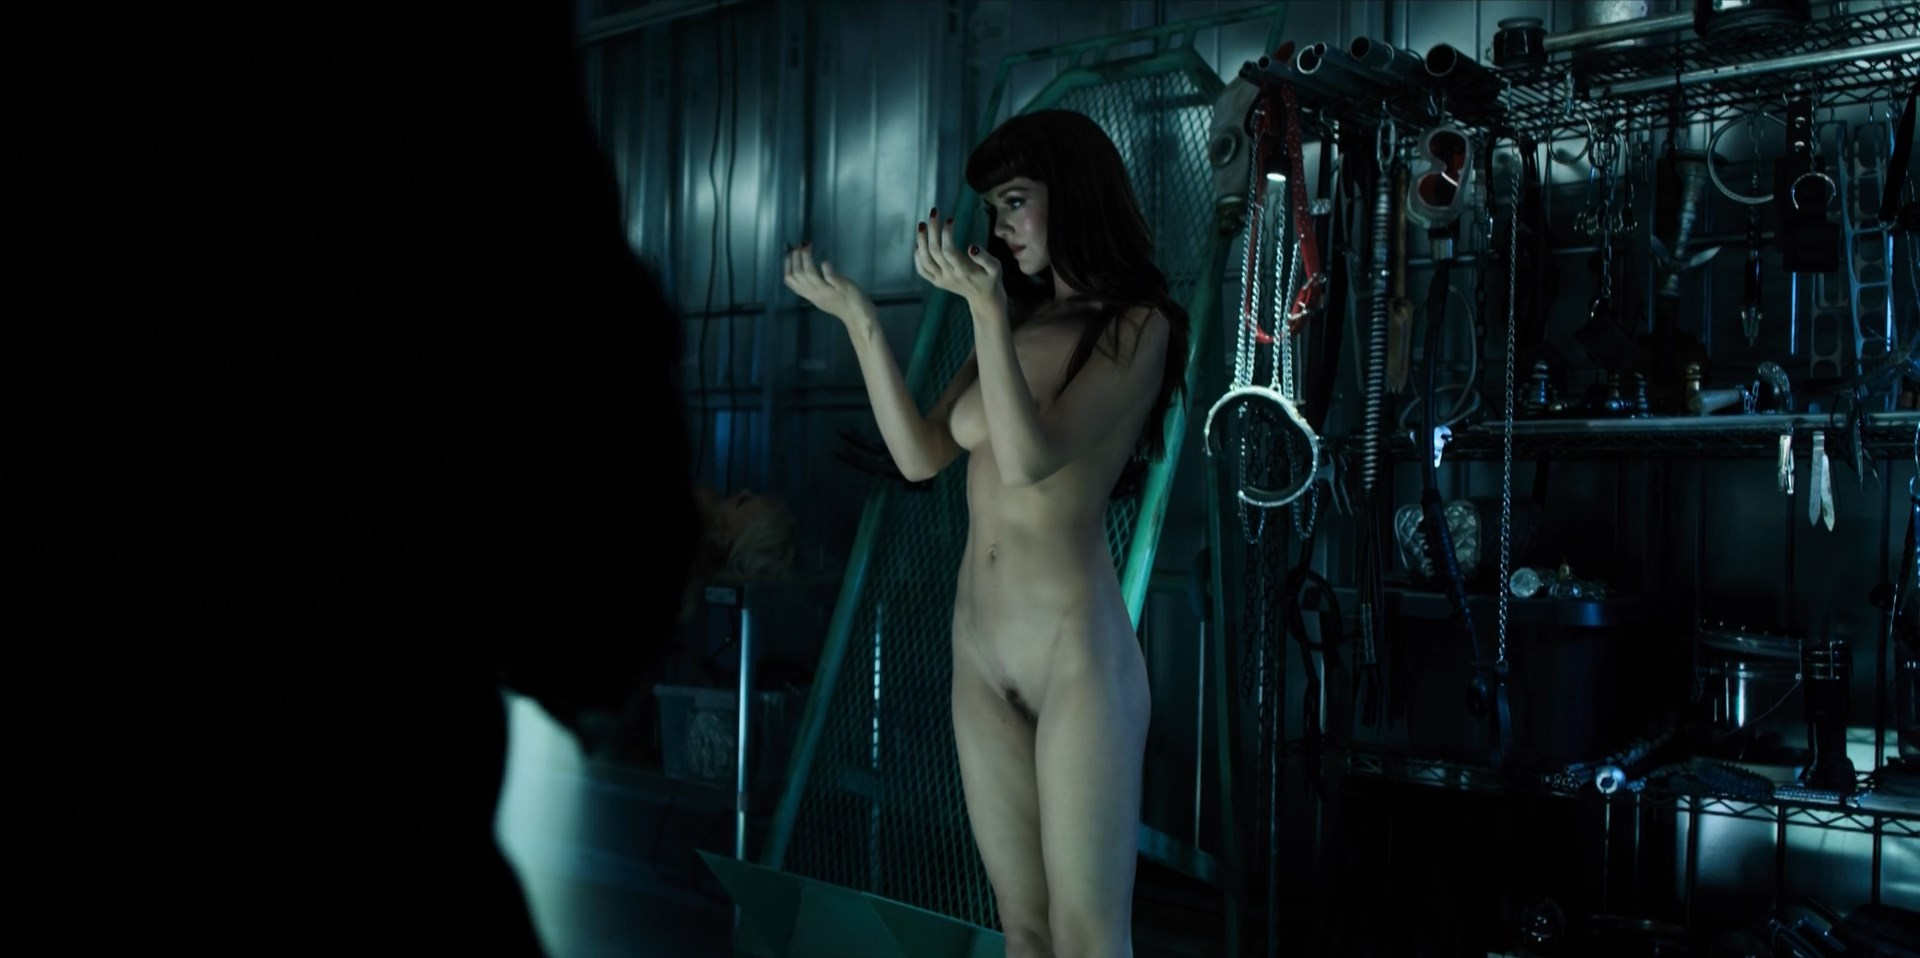 Hannah Rose May, Hayley Law - Altered Carbon s01e09-10 (2018) HD 1080p